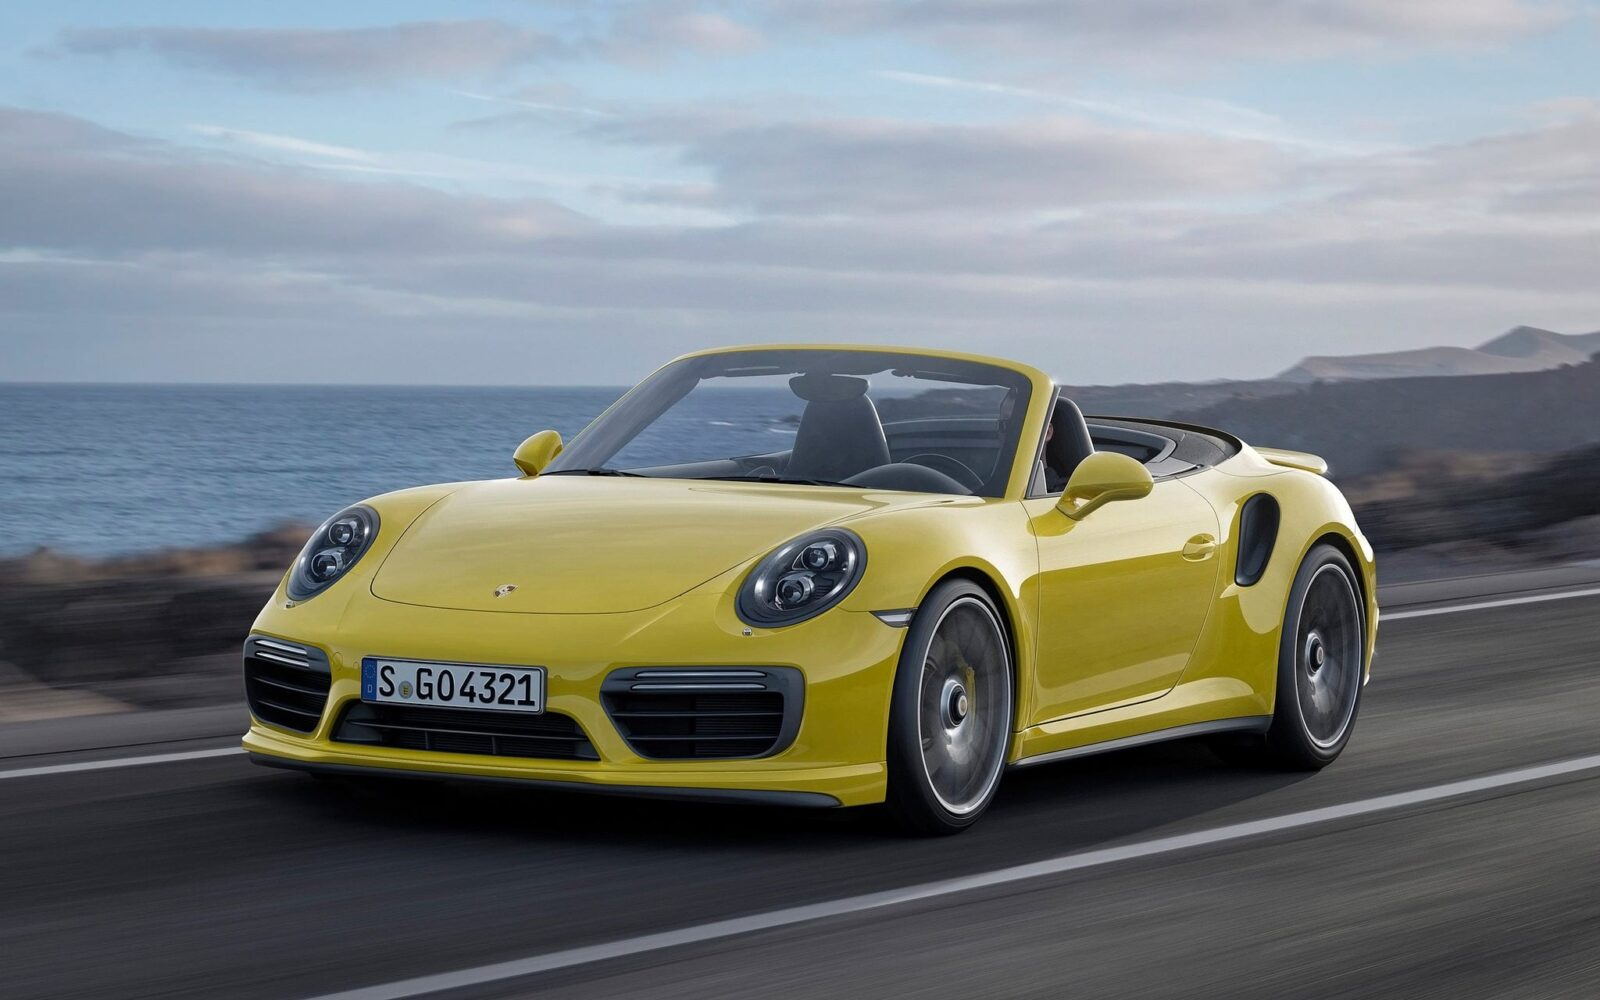 2016 Porsche 911 Turbo S Cabriolet picture